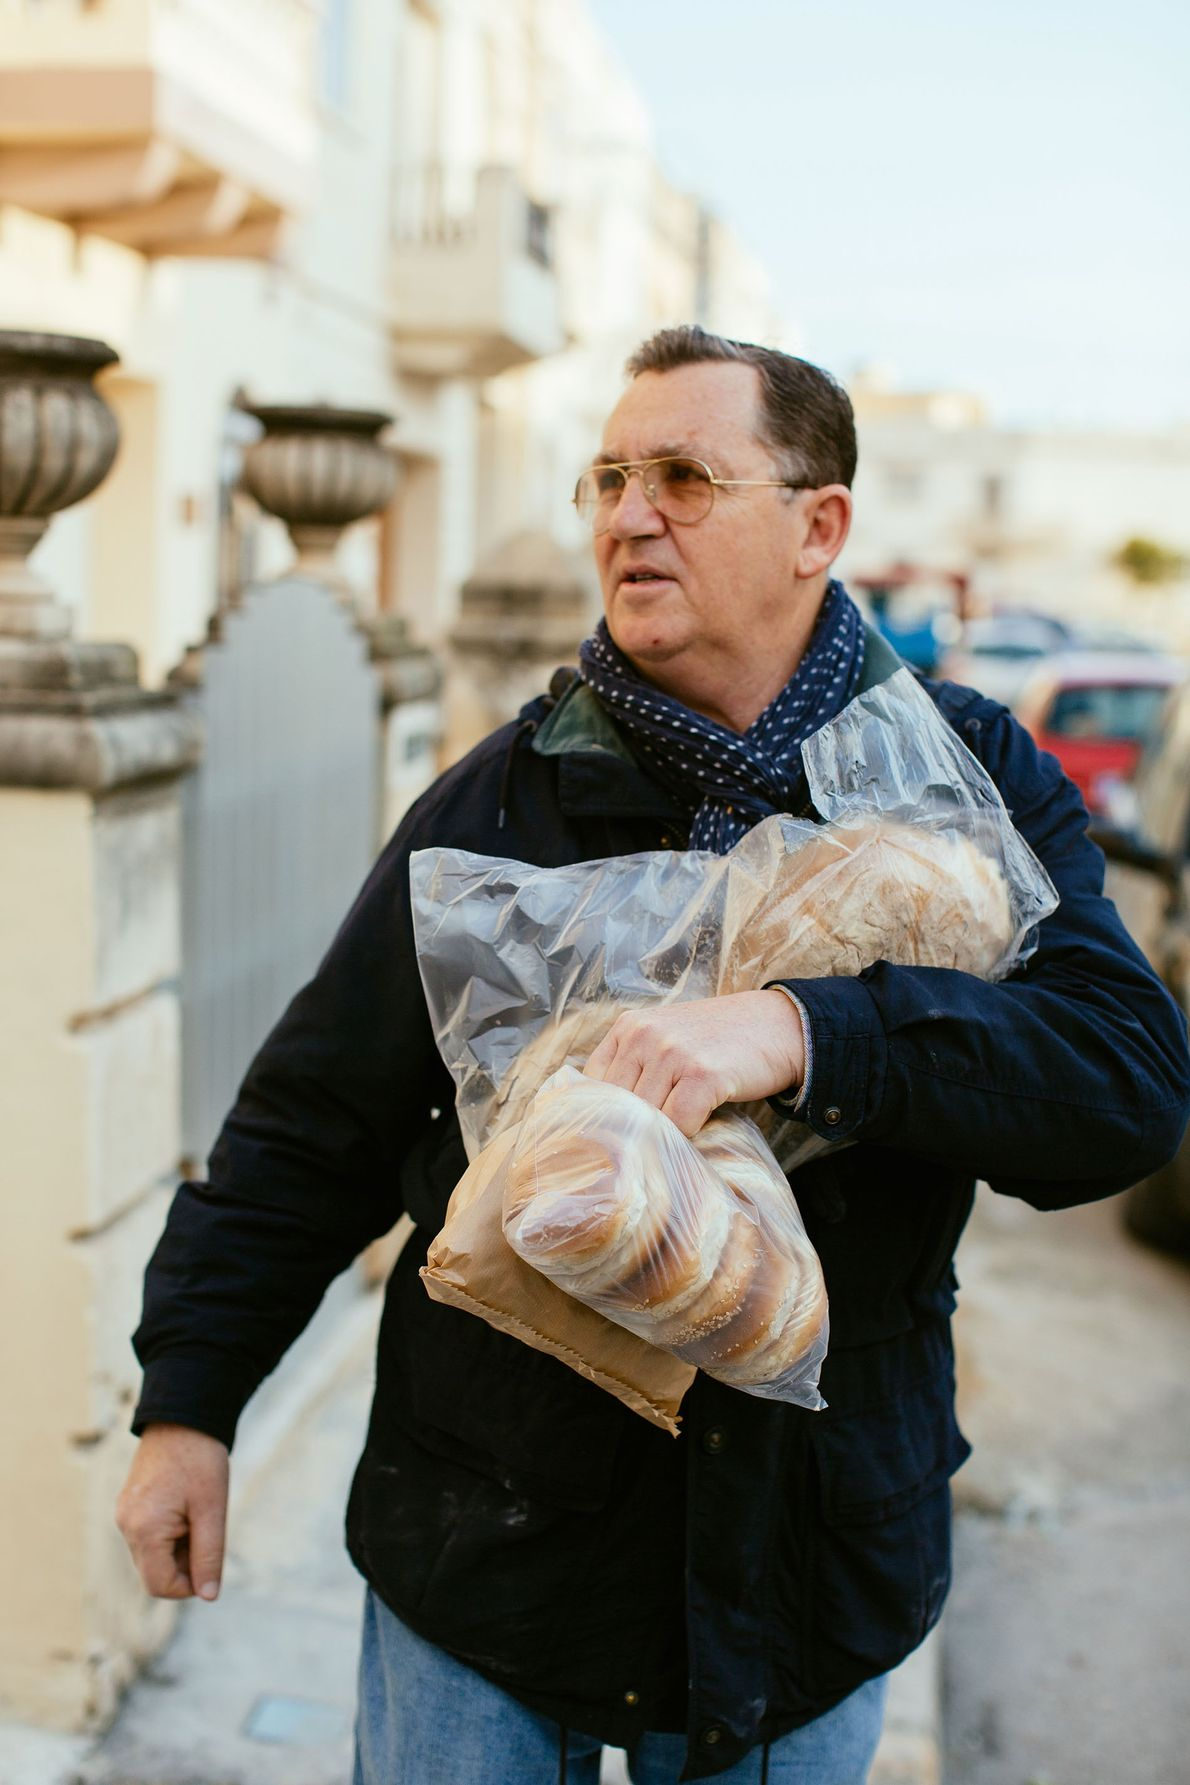 Julian stocks up on bread for the family meal